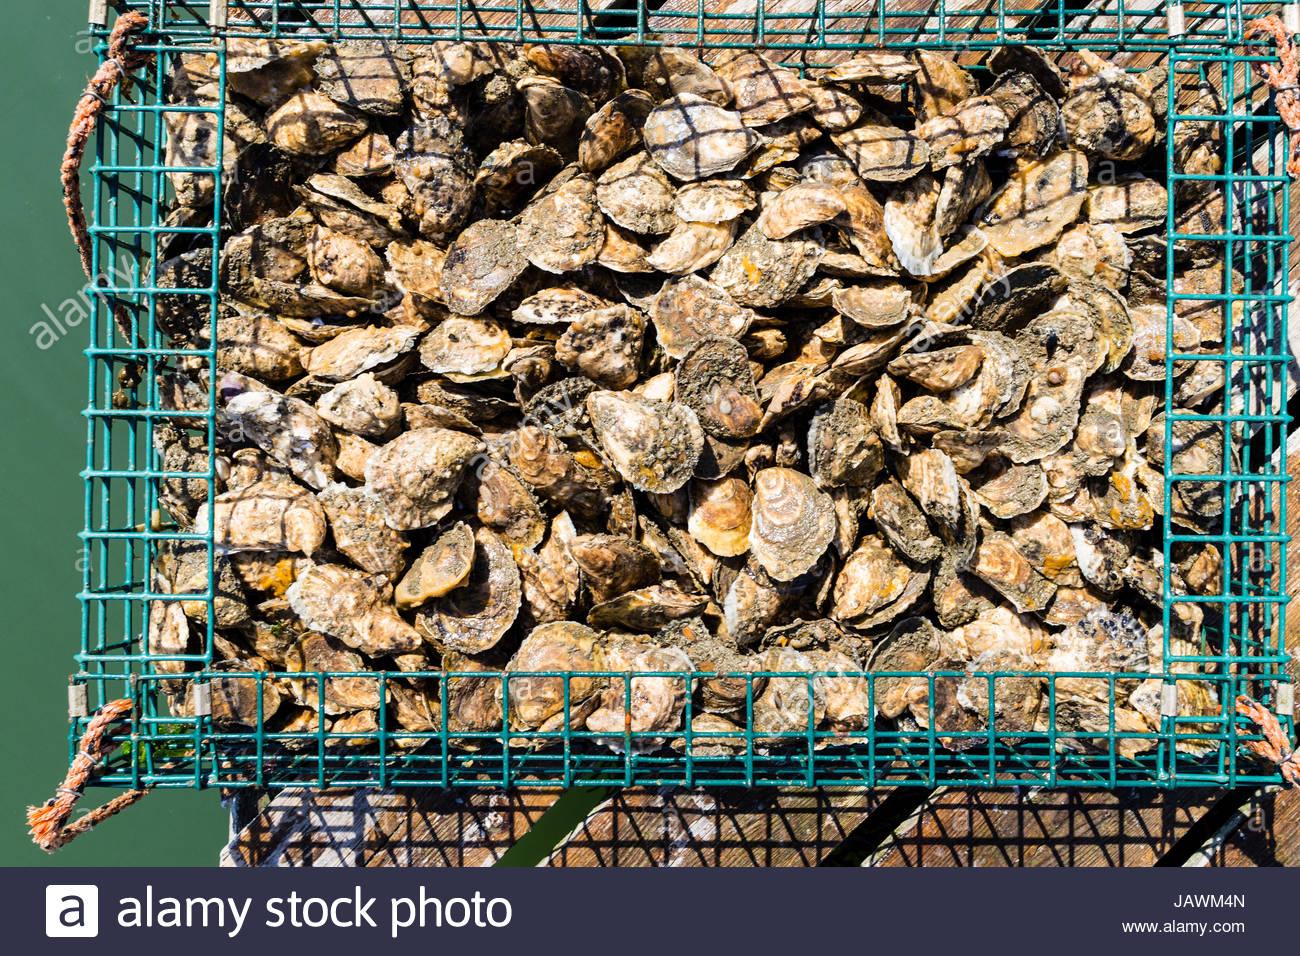 A bushel of oyesters in a green wire basket fresh from the river bed. Stock Photo